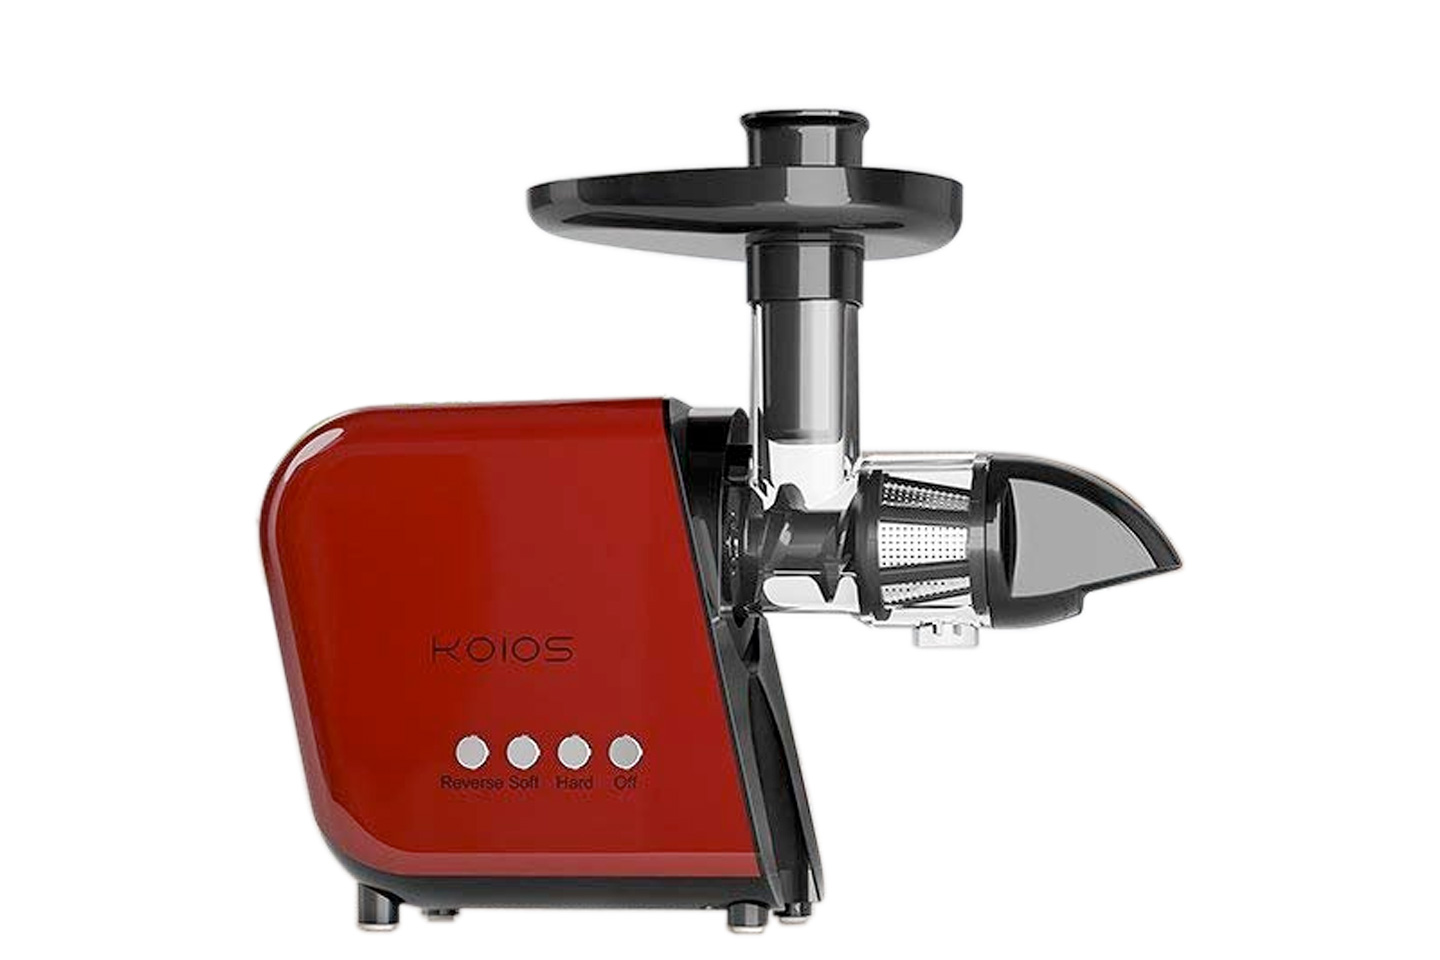 KOIOS Masticating Juice Extractor Review | HeartyBlends.co